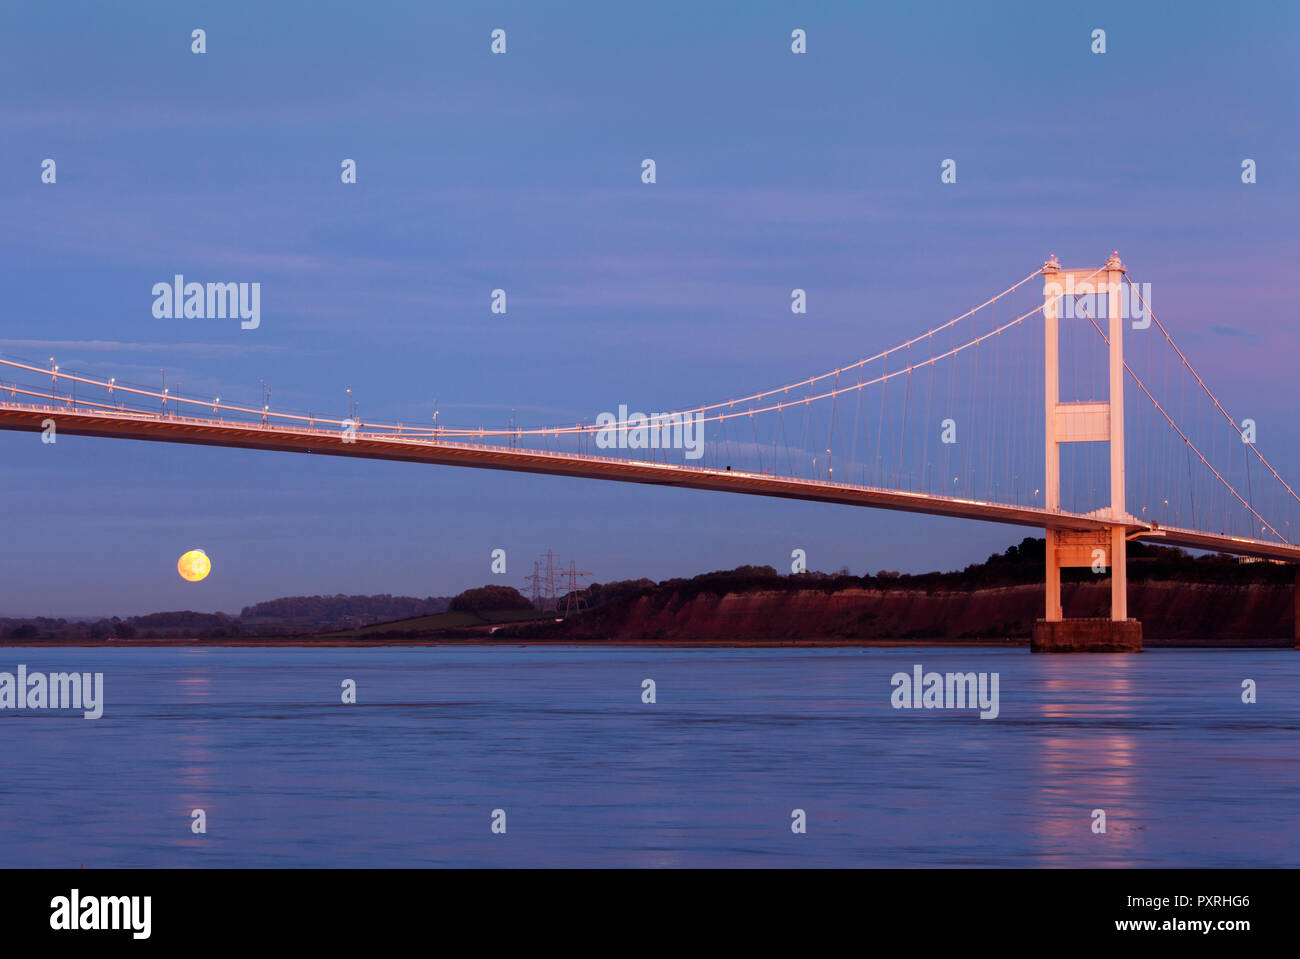 The moon rising under the old Severn Bridge, in South Gloucestershire, U.K. Built in 1966 this historic landmark and major feat of civil engineering will be abolishing its toll charges at the end of December 2018, after 52 years. - Stock Image